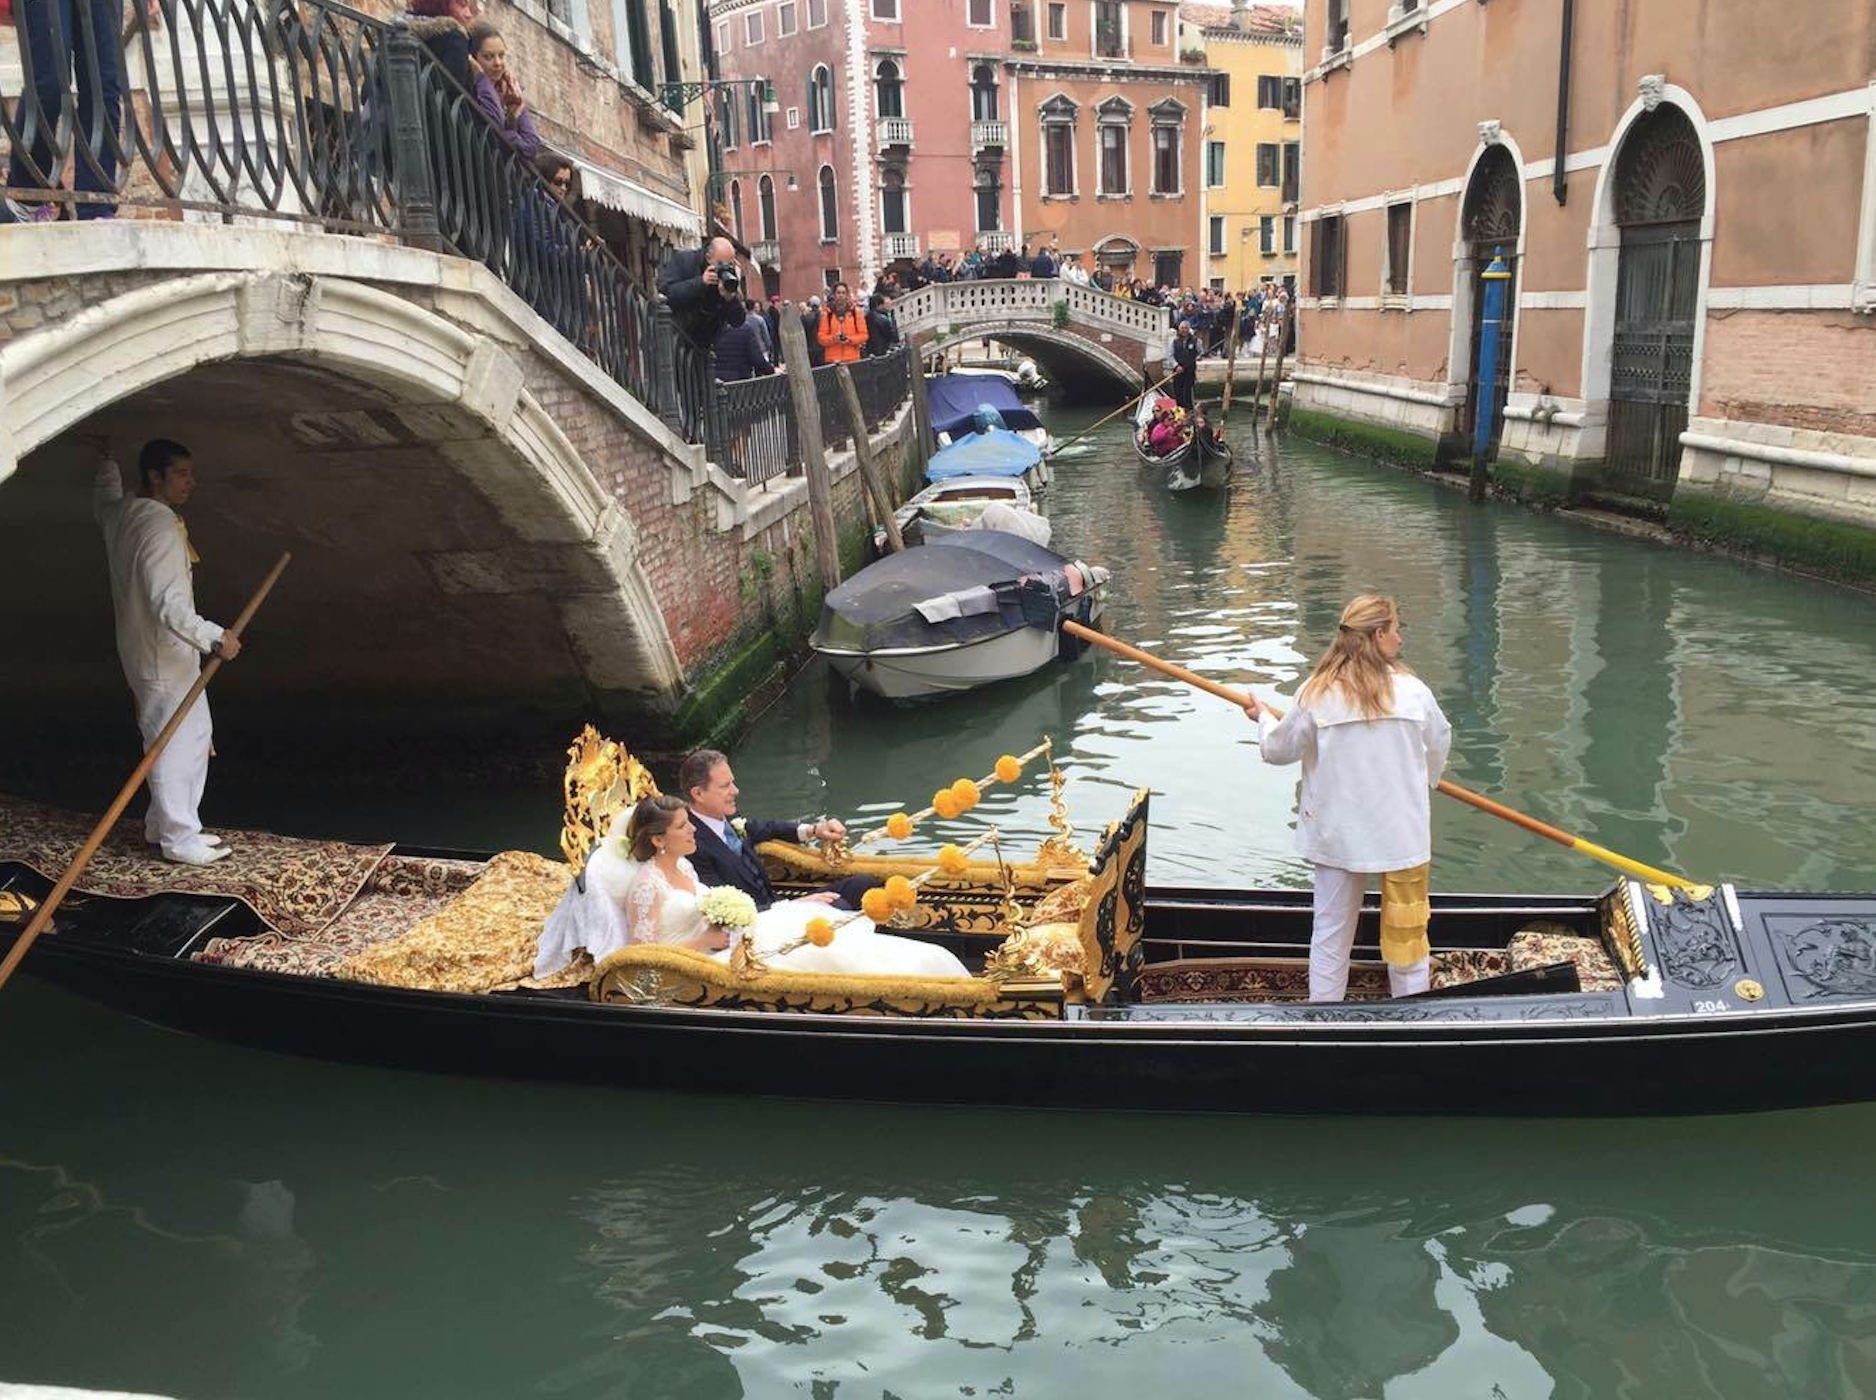 """This beautiful bride is getting married in Venice, Italy. The bride and her father are doing the traditional Gondola ride through the canals of Venice to the church. All of the guests are standing on the bridge and above her to welcome the bride and her father to the church. Some traditional brides in Italy, however, will replace the """"something blue"""" with a green dress or accessory."""